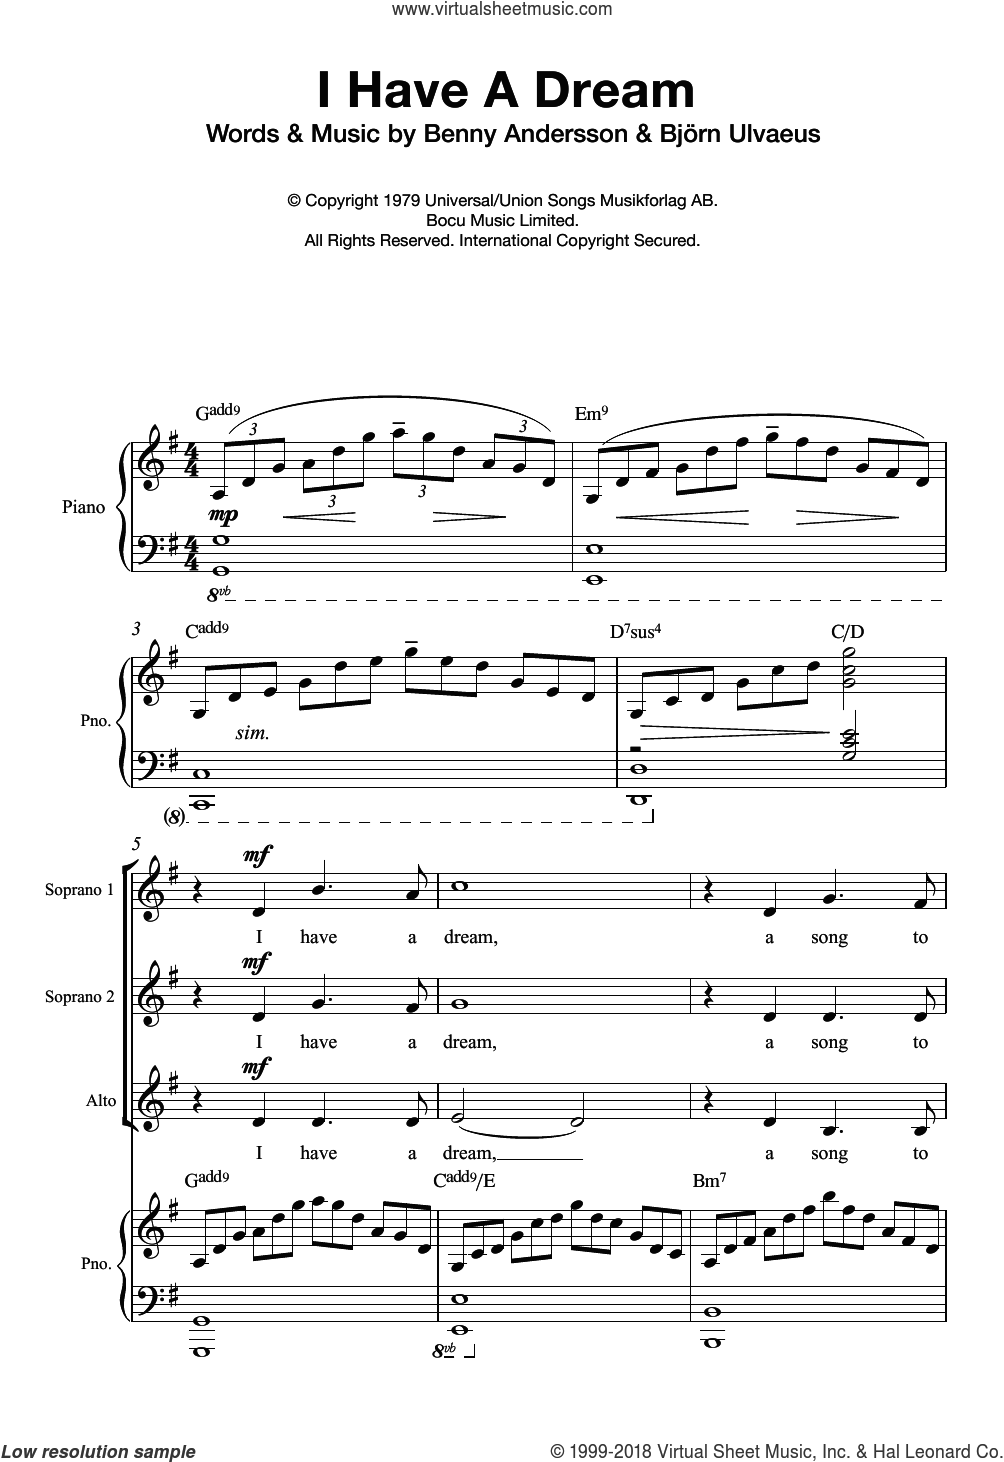 I Have A Dream (Arr. Quentin Thomas) sheet music for choir and piano by Benny Andersson